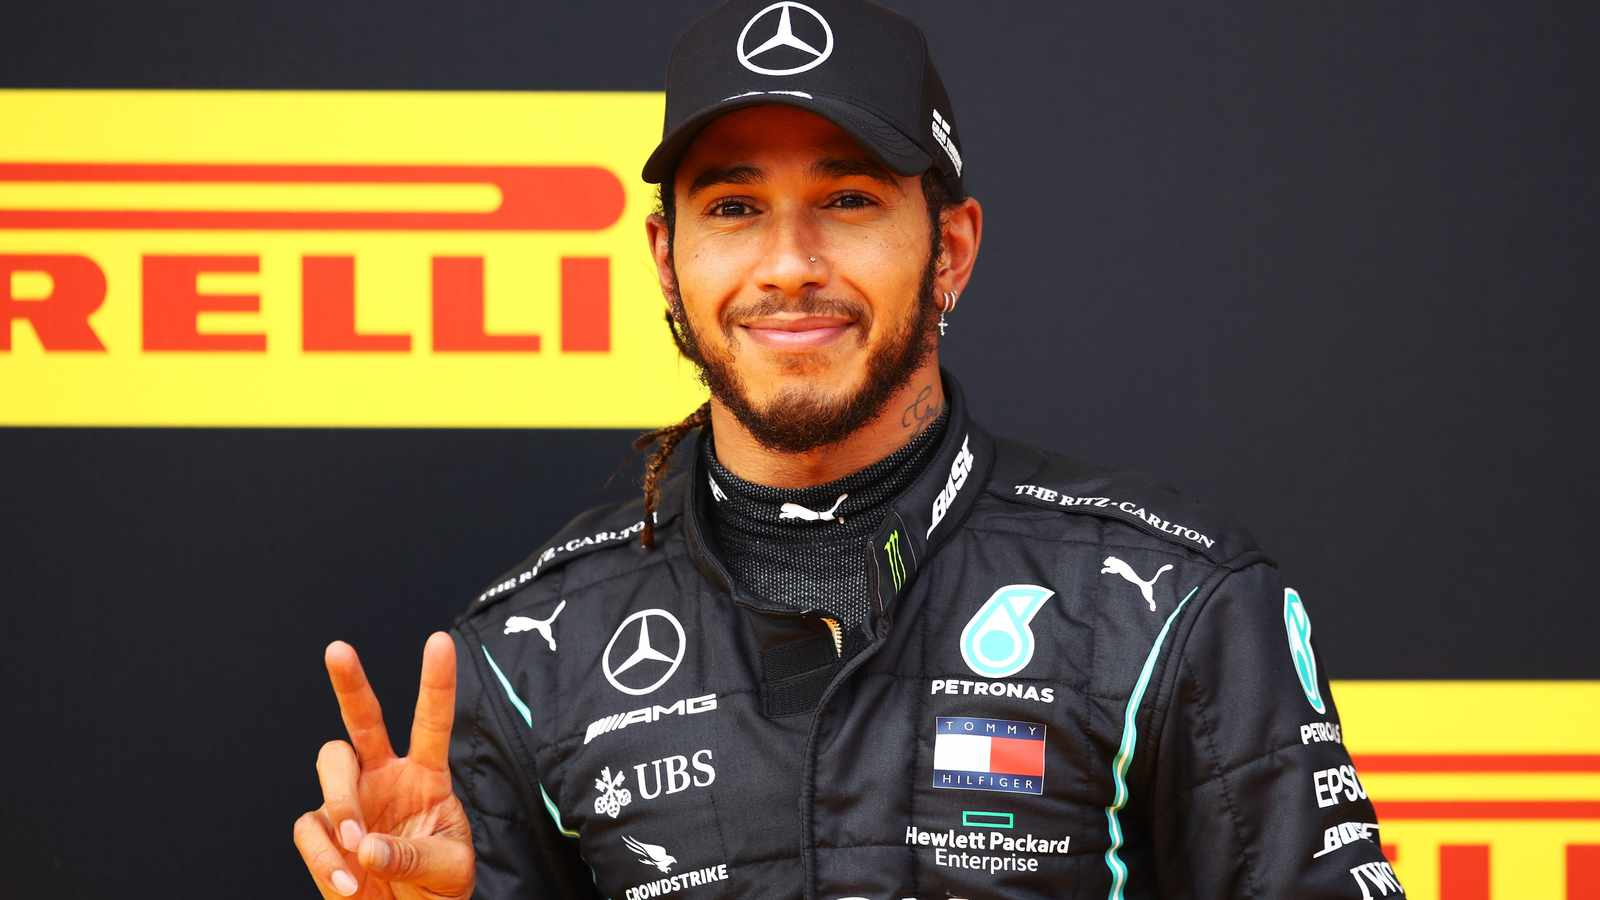 Lewis Hamilton: 'I may not always get it right'